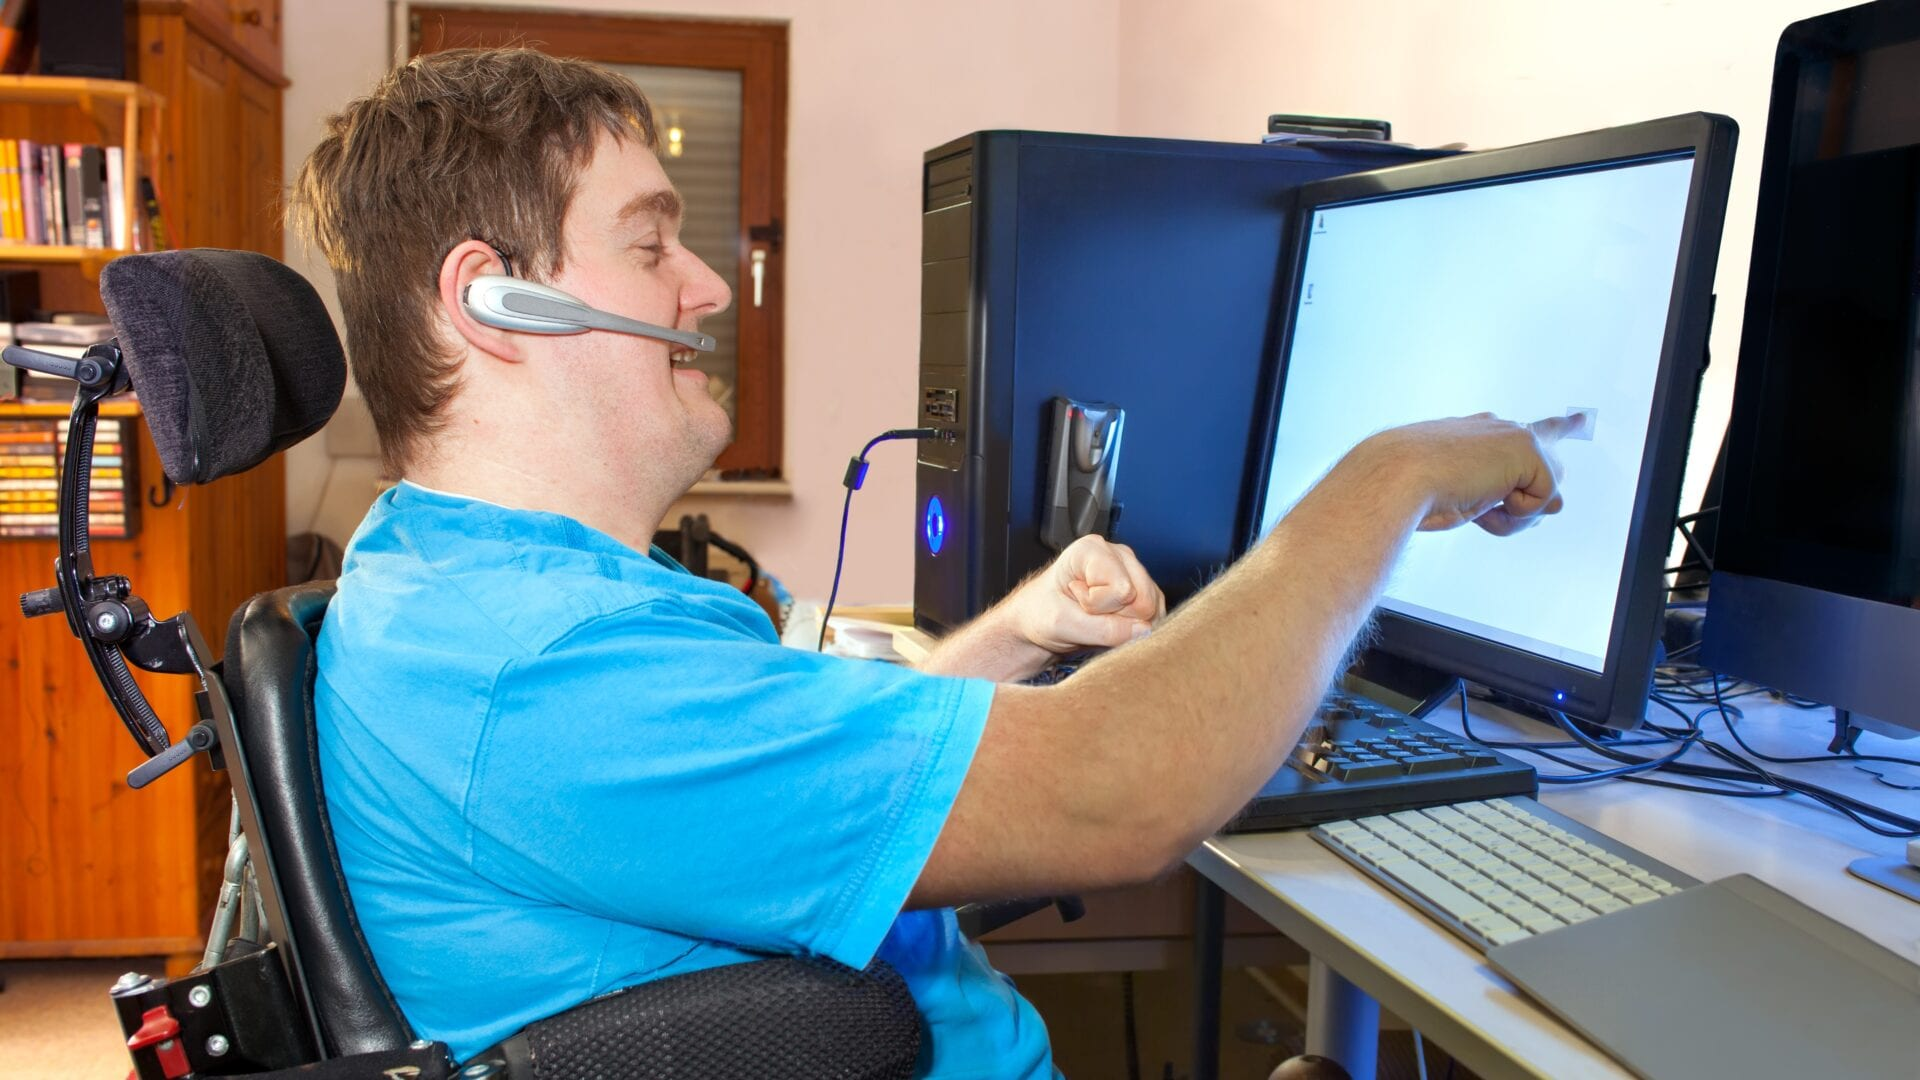 Man in a wheelchair pointing to his computer screen